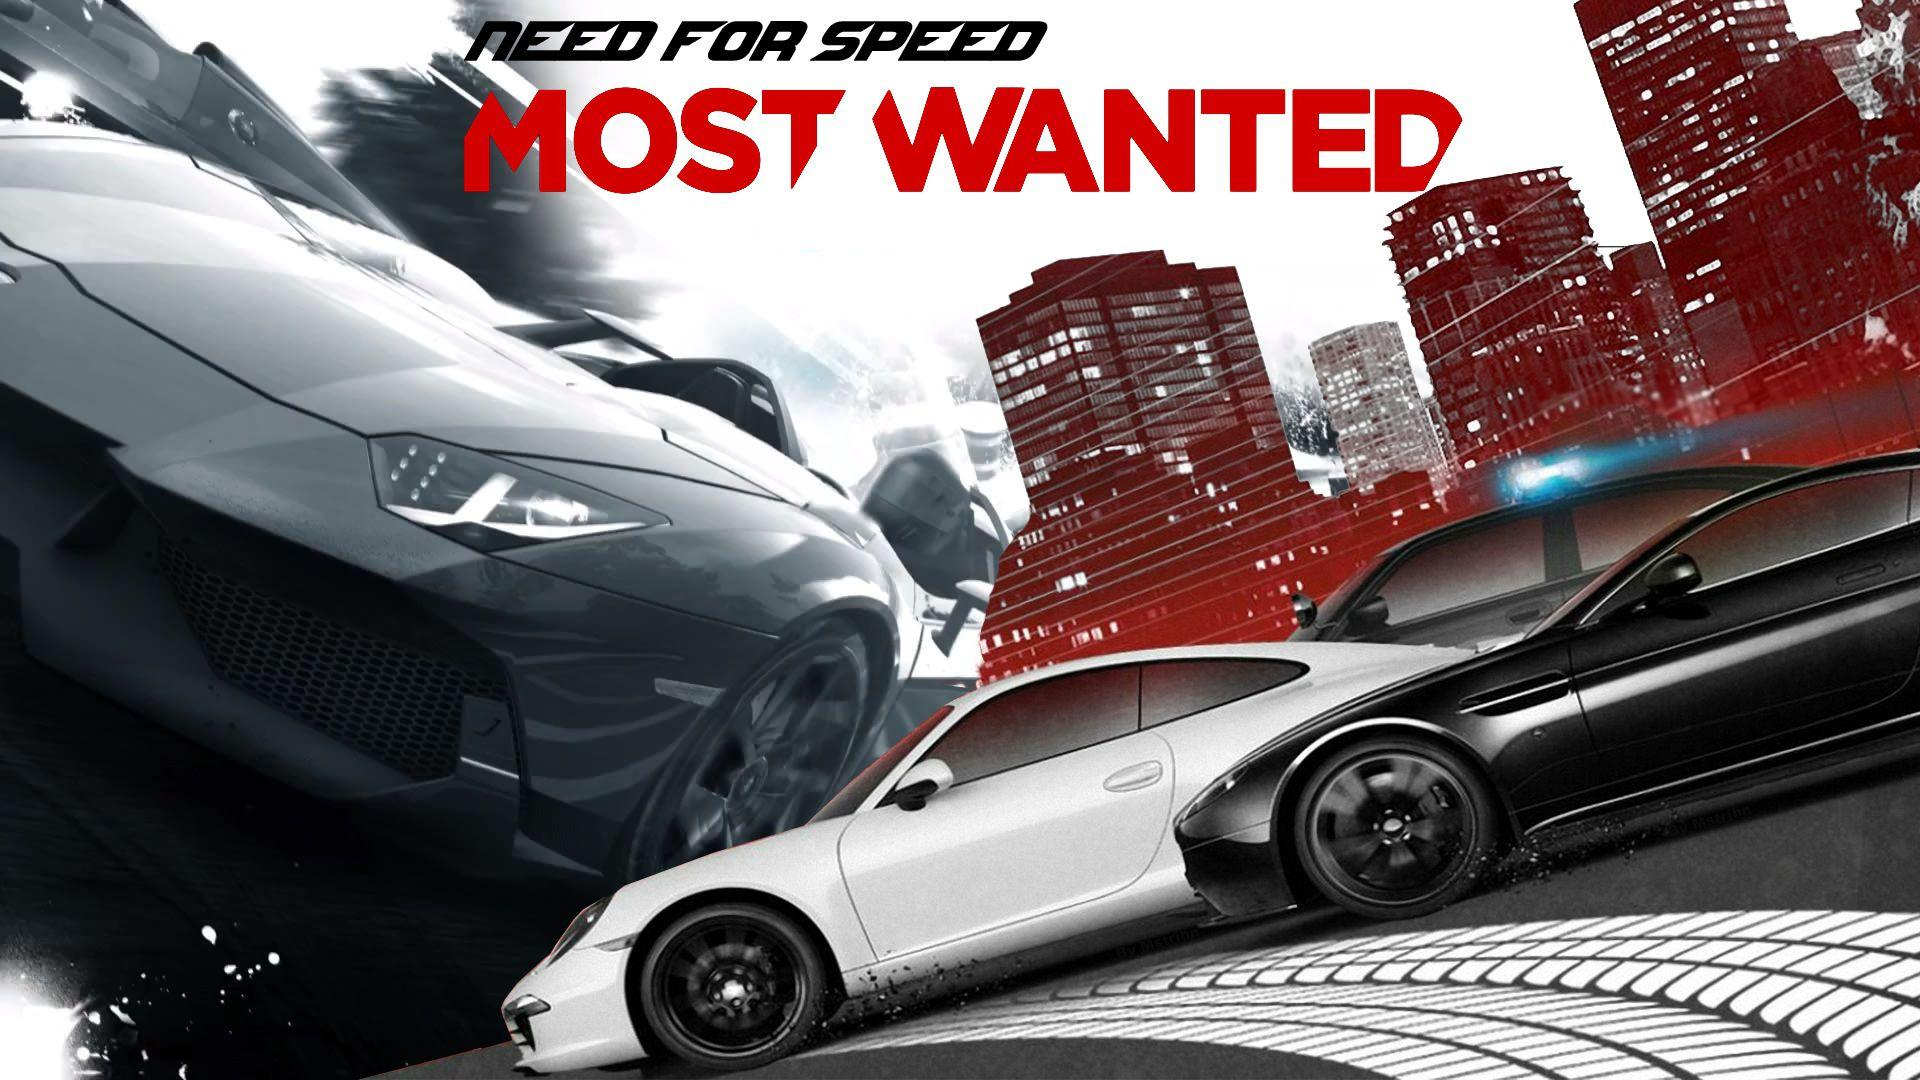 Need for speed most wanted wallpapers wallpaper cave for Nfs most wanted android